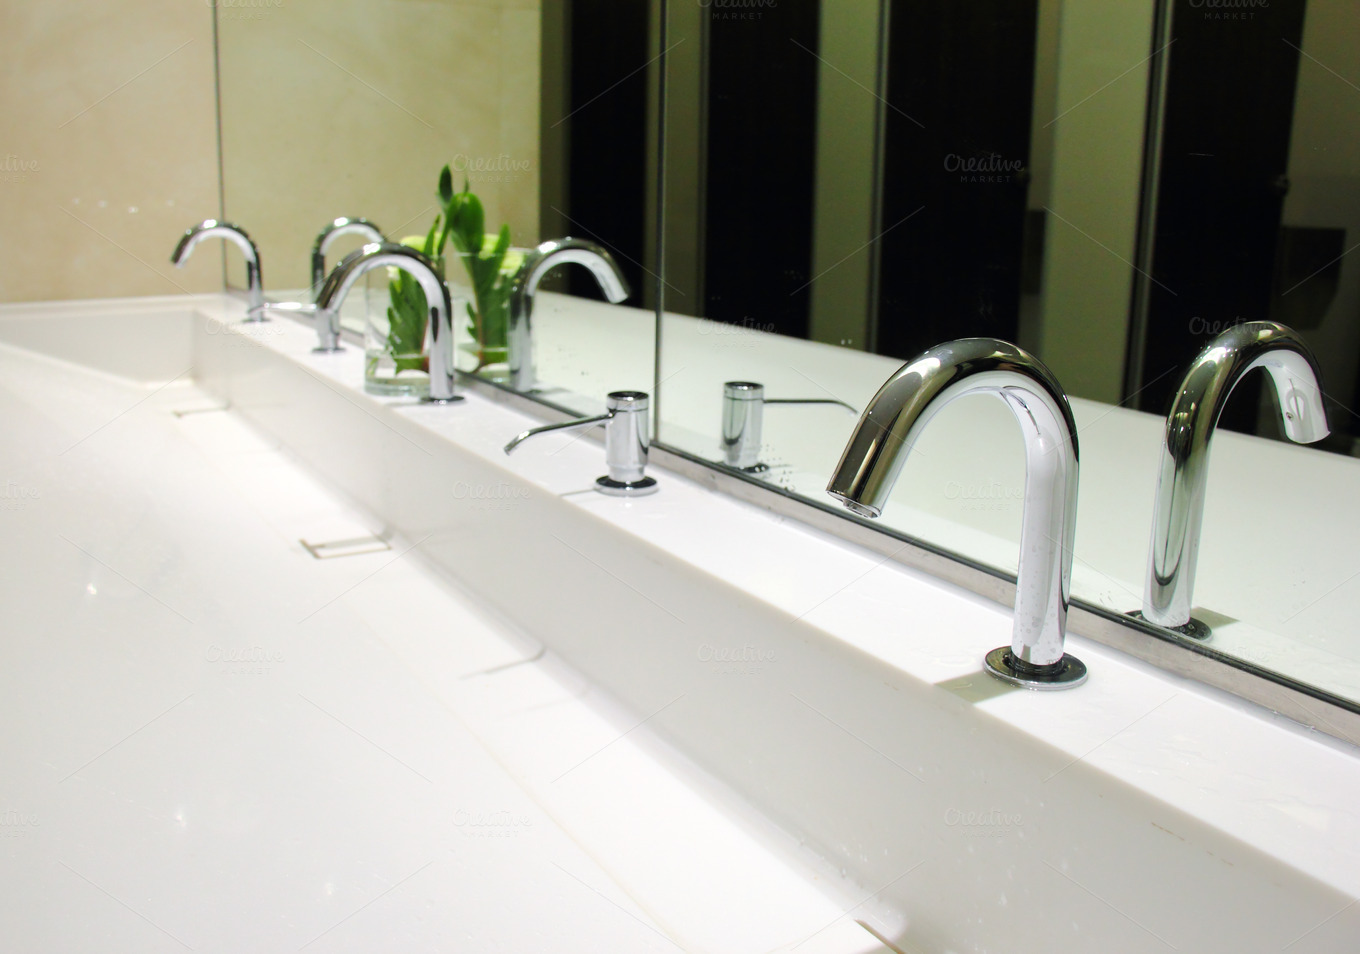 sinks and taps in a public toilet ~ Health Photos on Creative Market